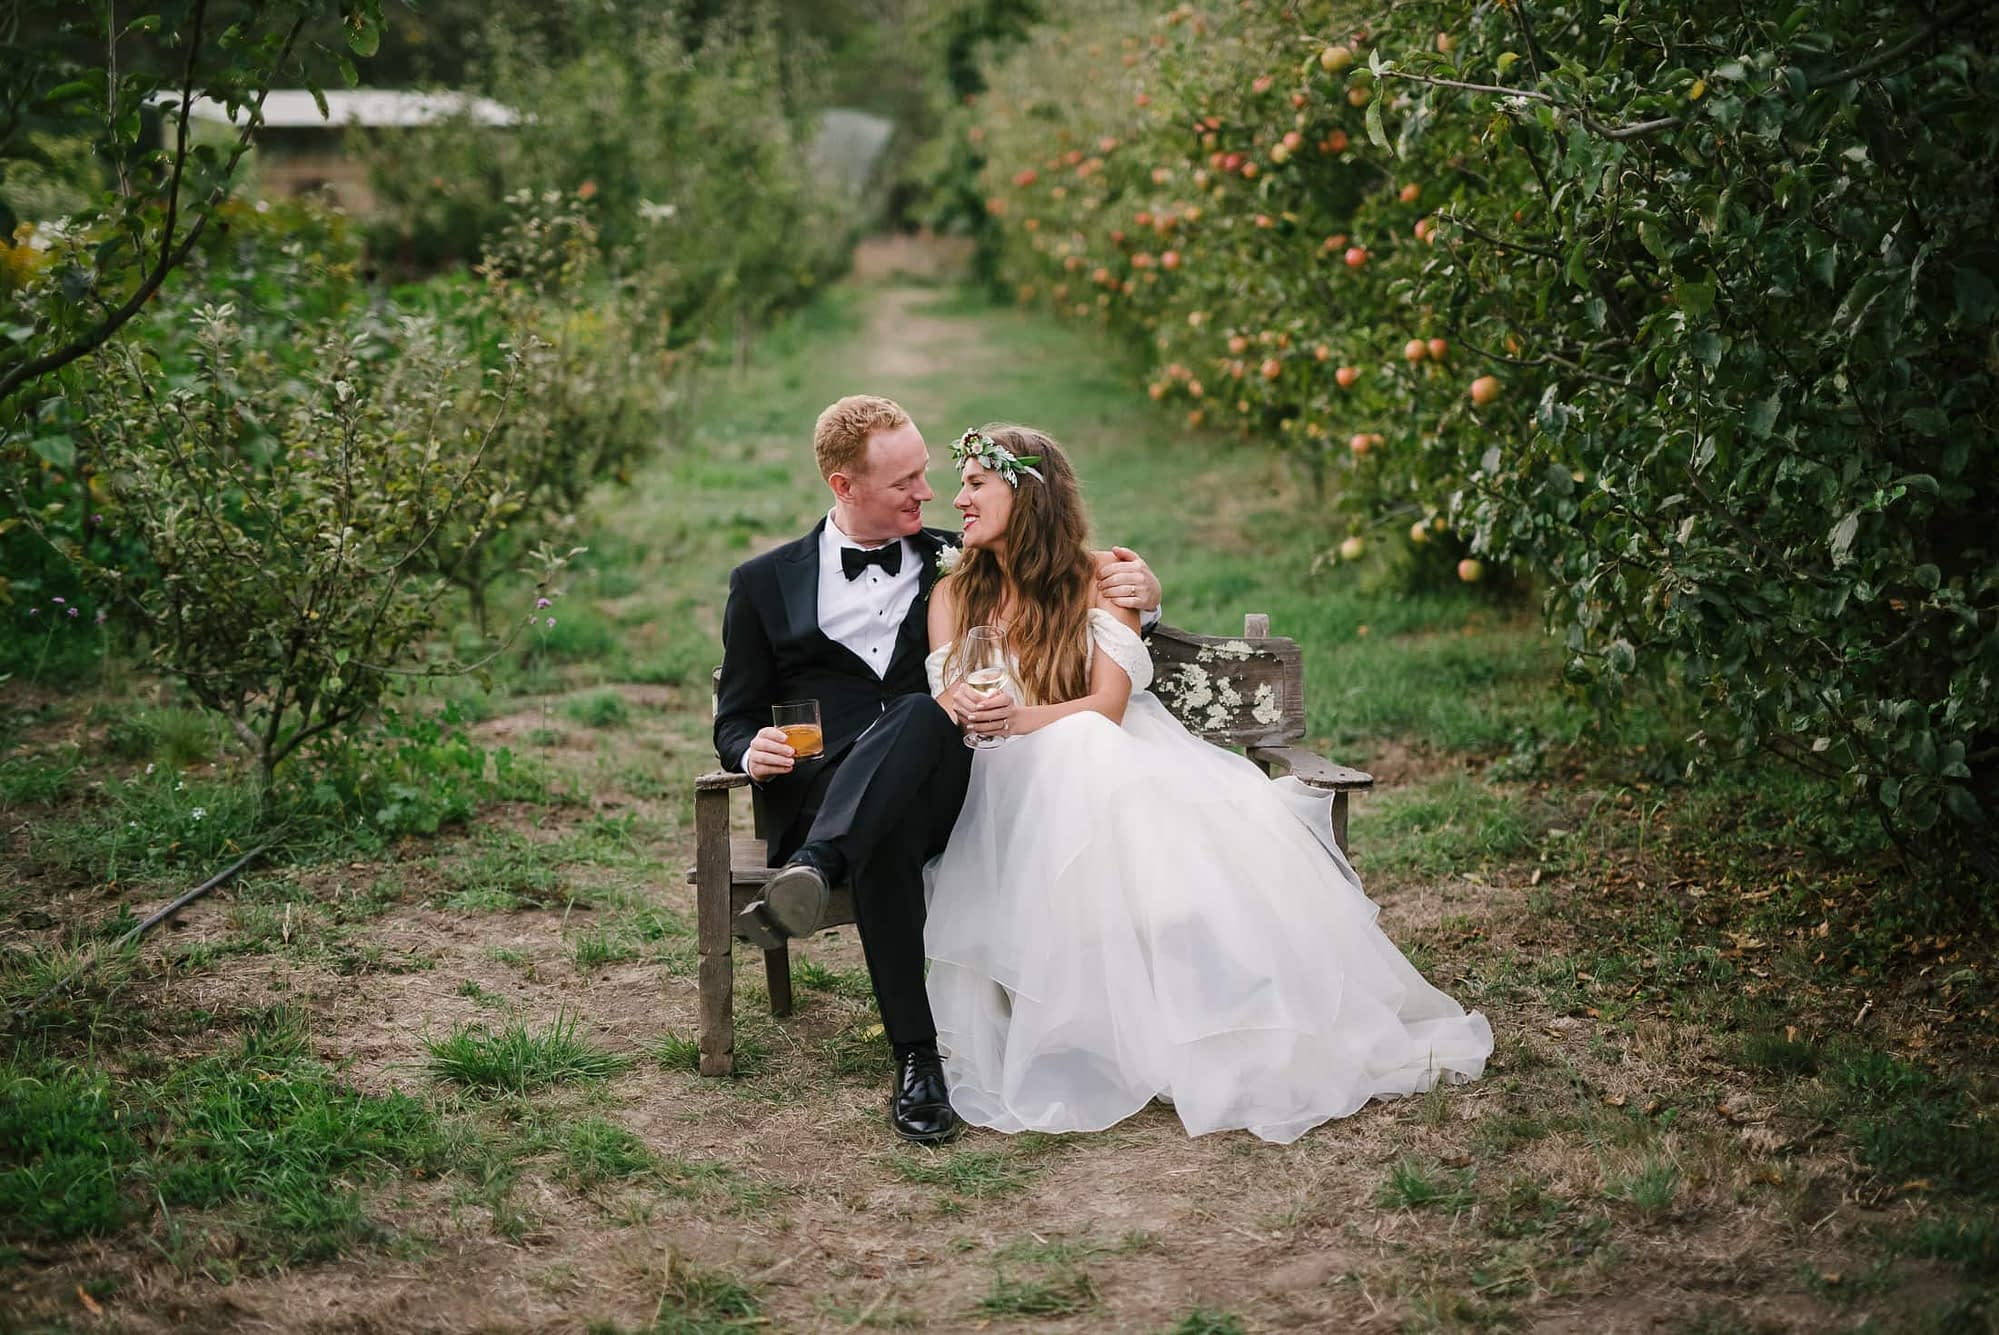 Oz Farm Wedding Orchard